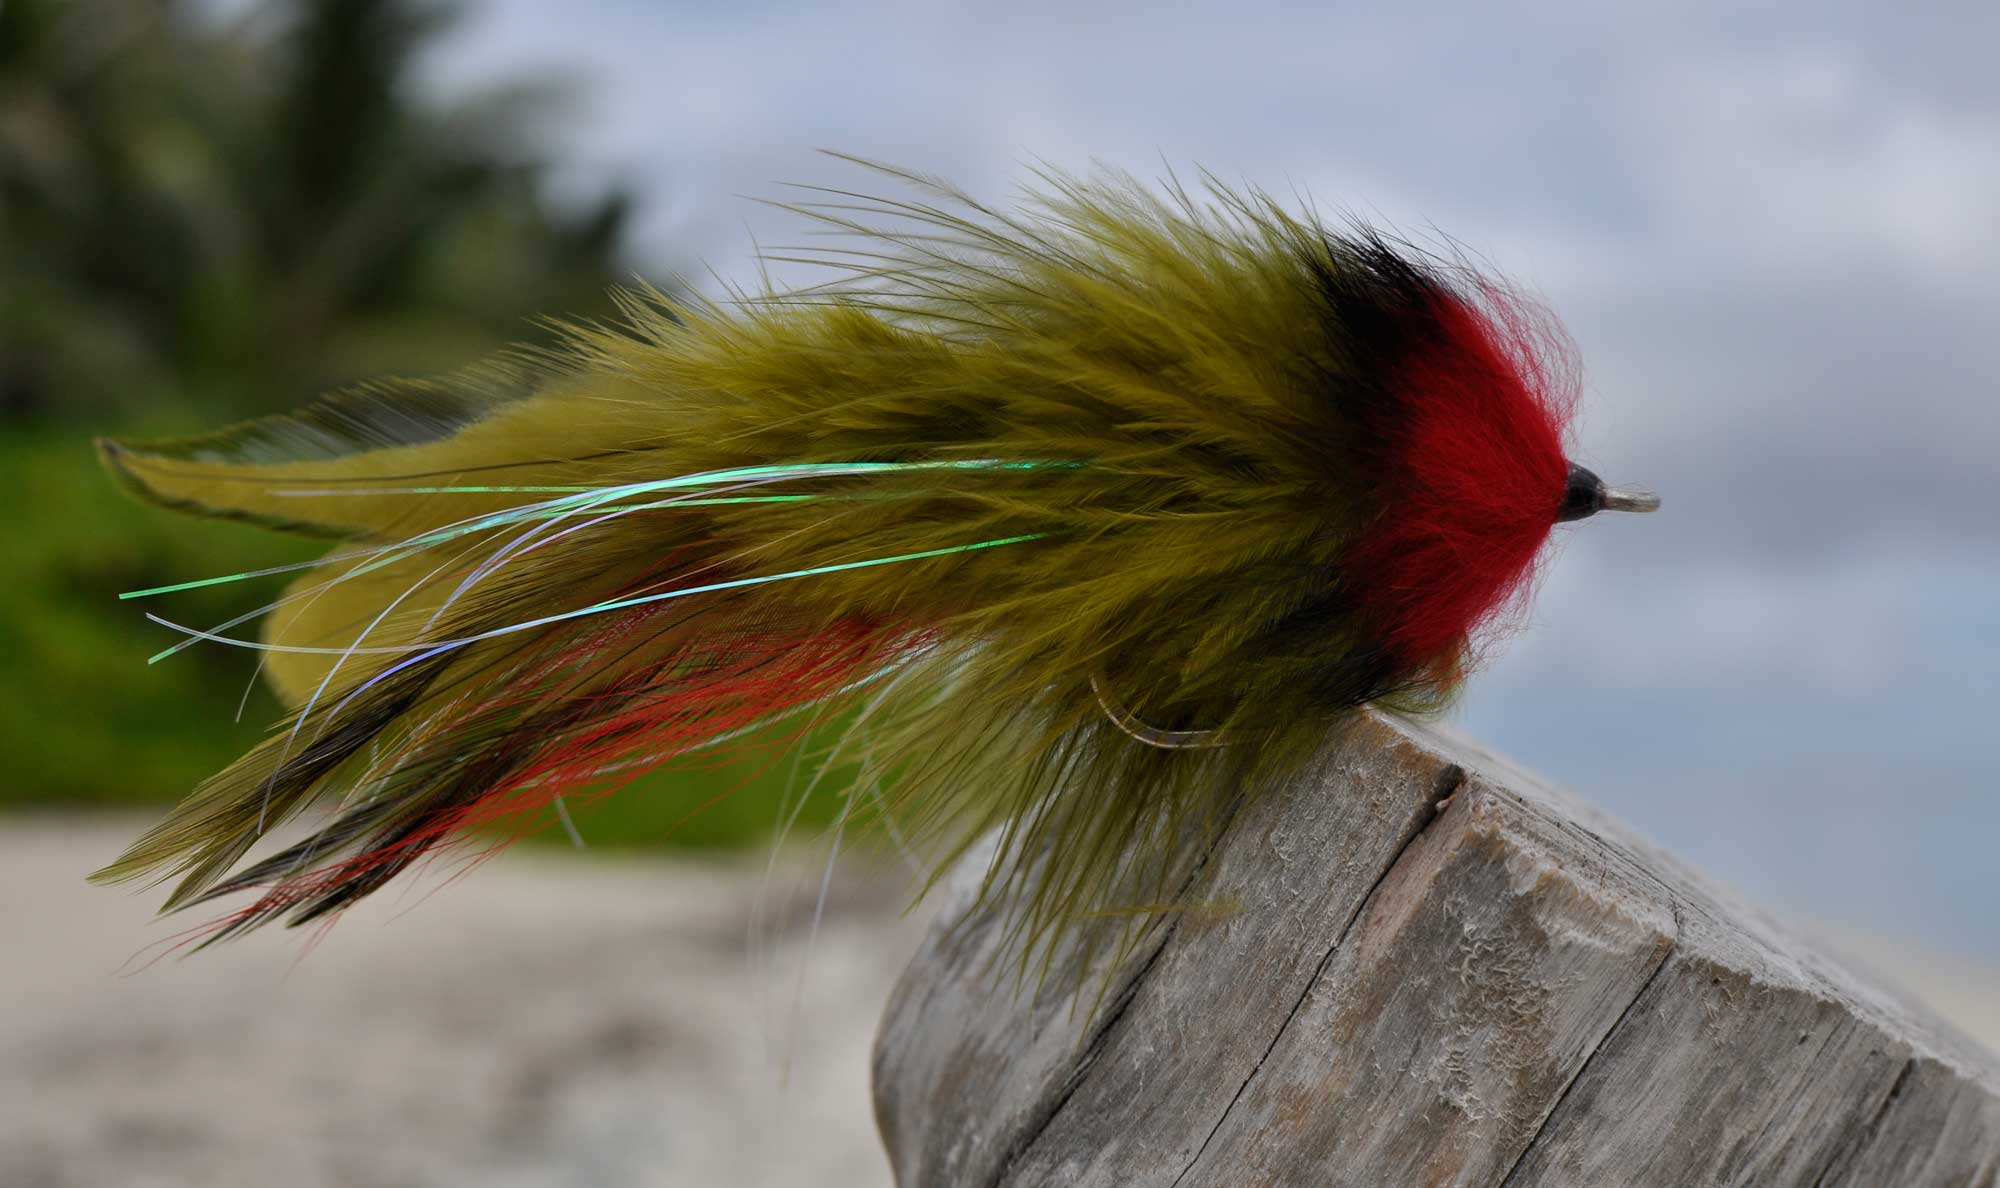 Barracuda-Olive-and-red-Semper